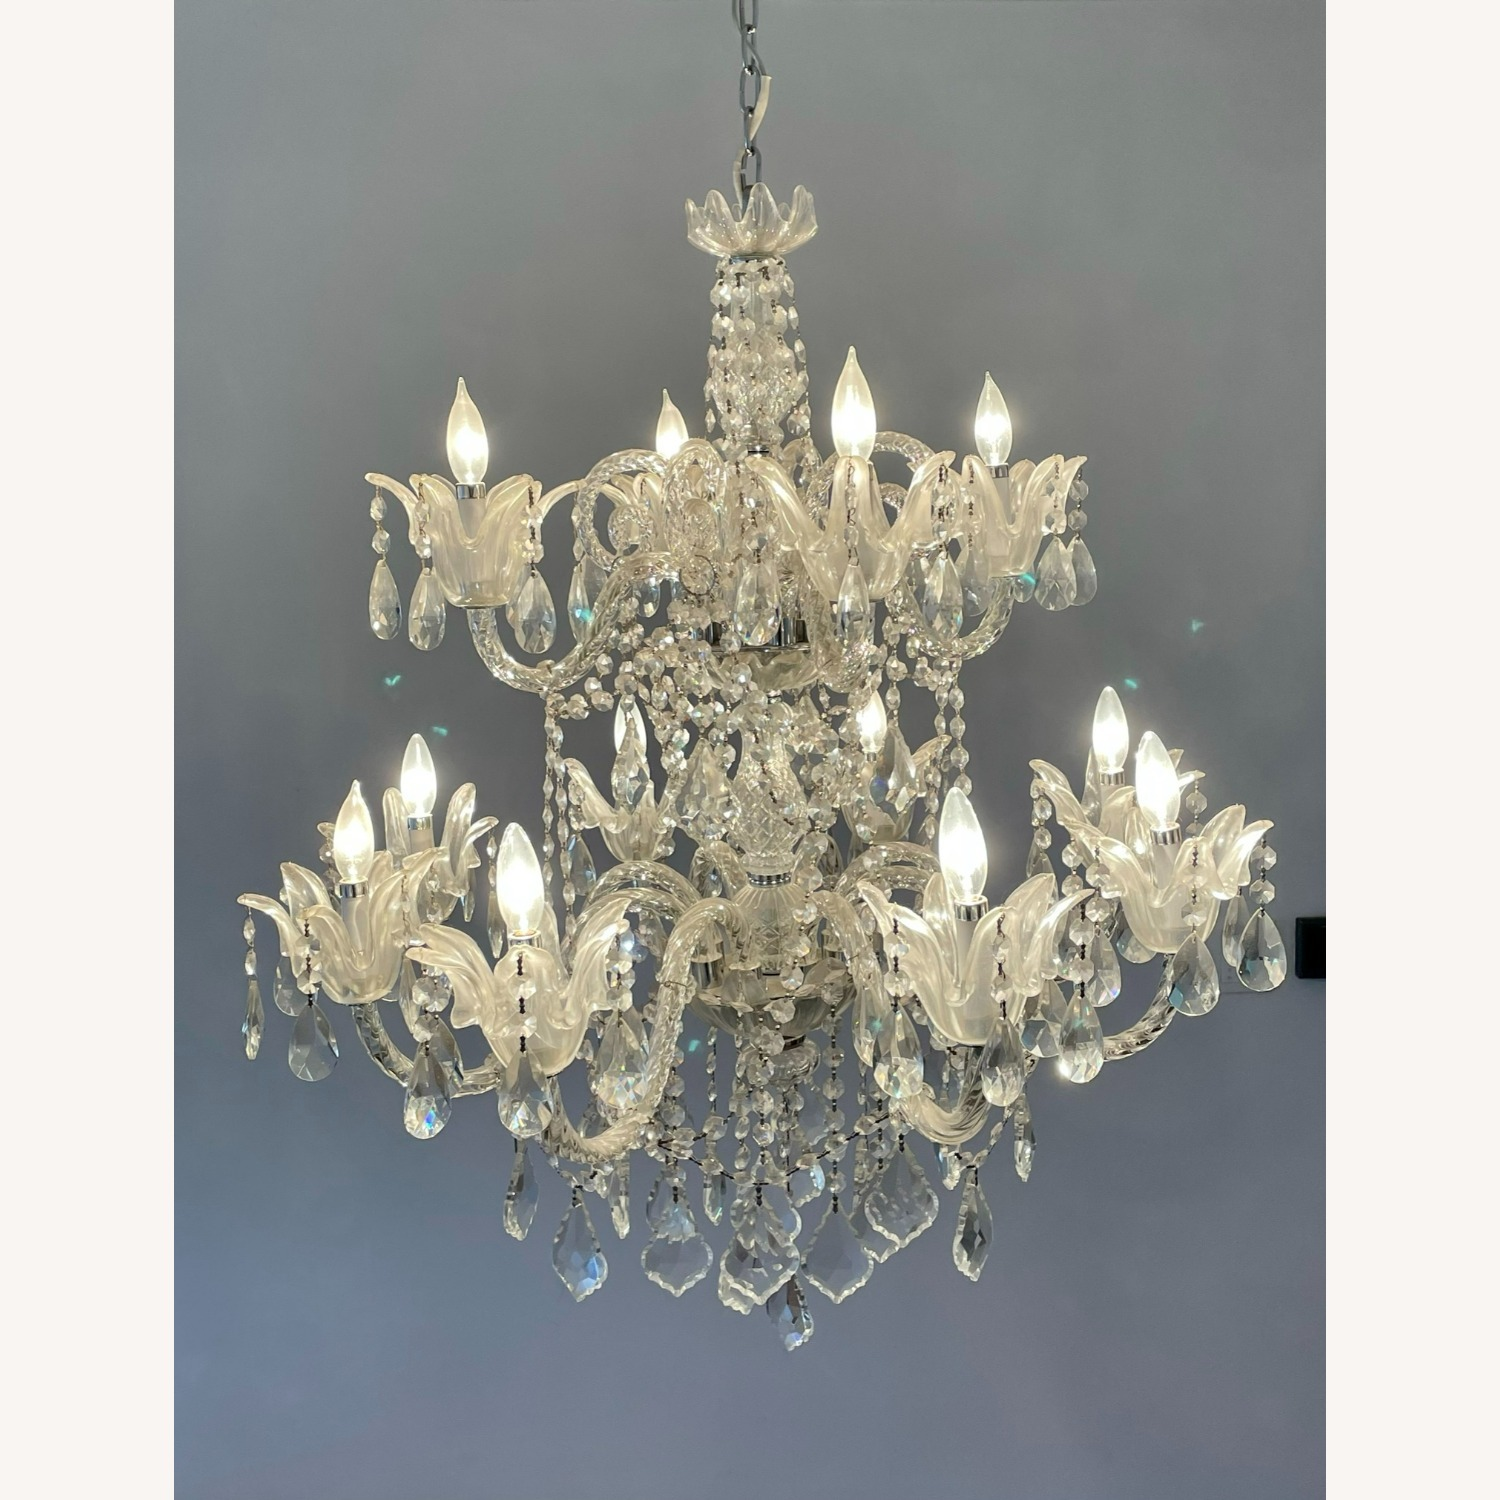 X-Large 12 Bulb Crystal 2-Tier Chandelier - image-8